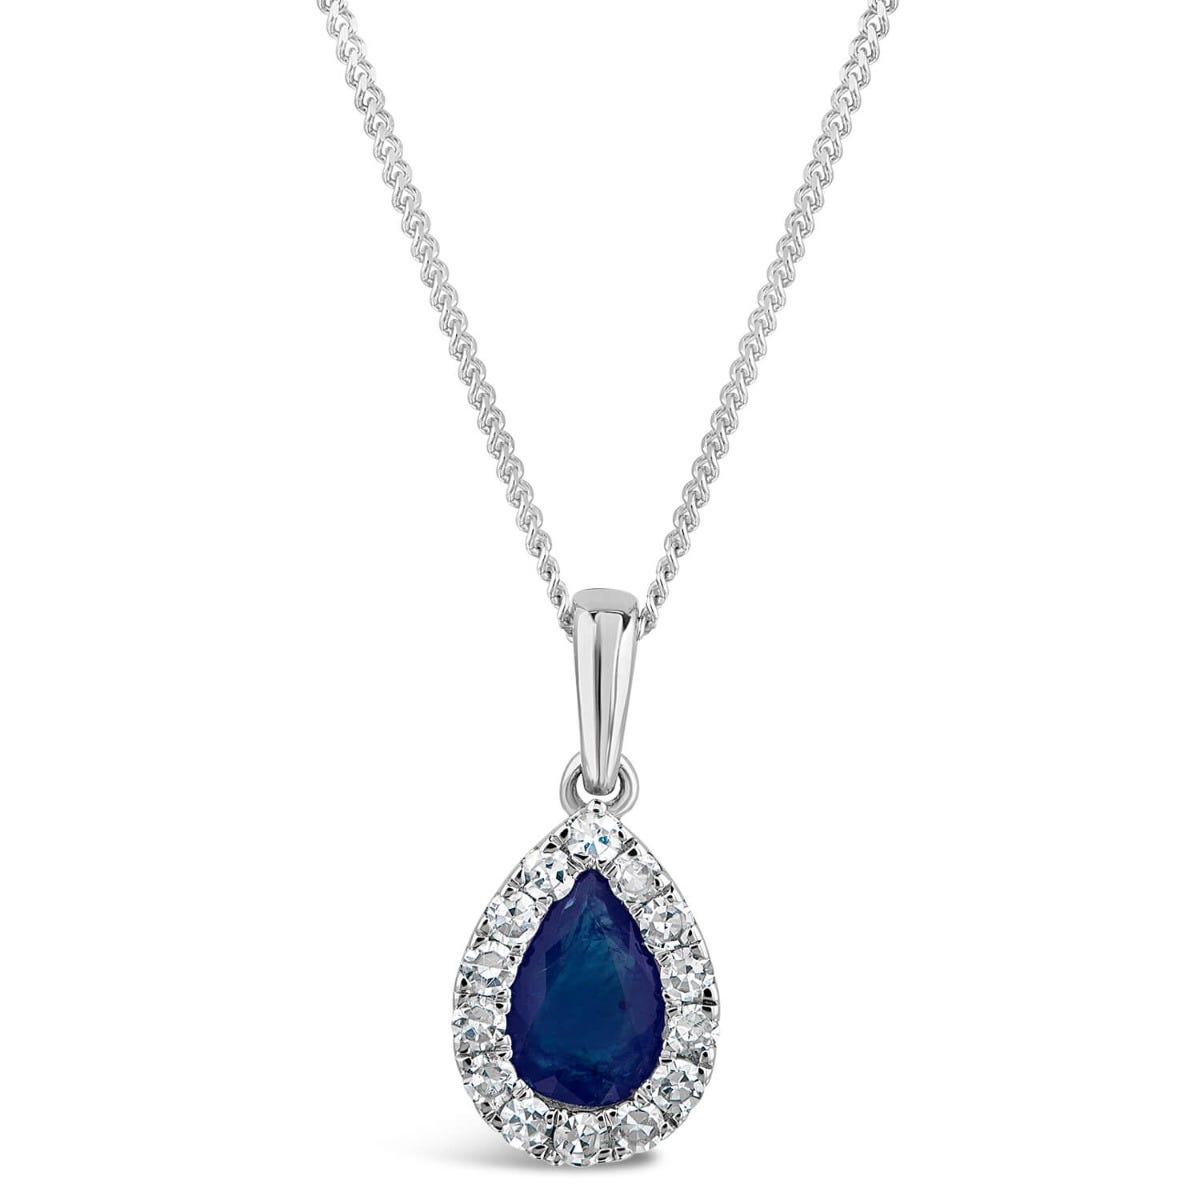 9ct White Gold Diamond and Sapphire Pear Halo Pendant